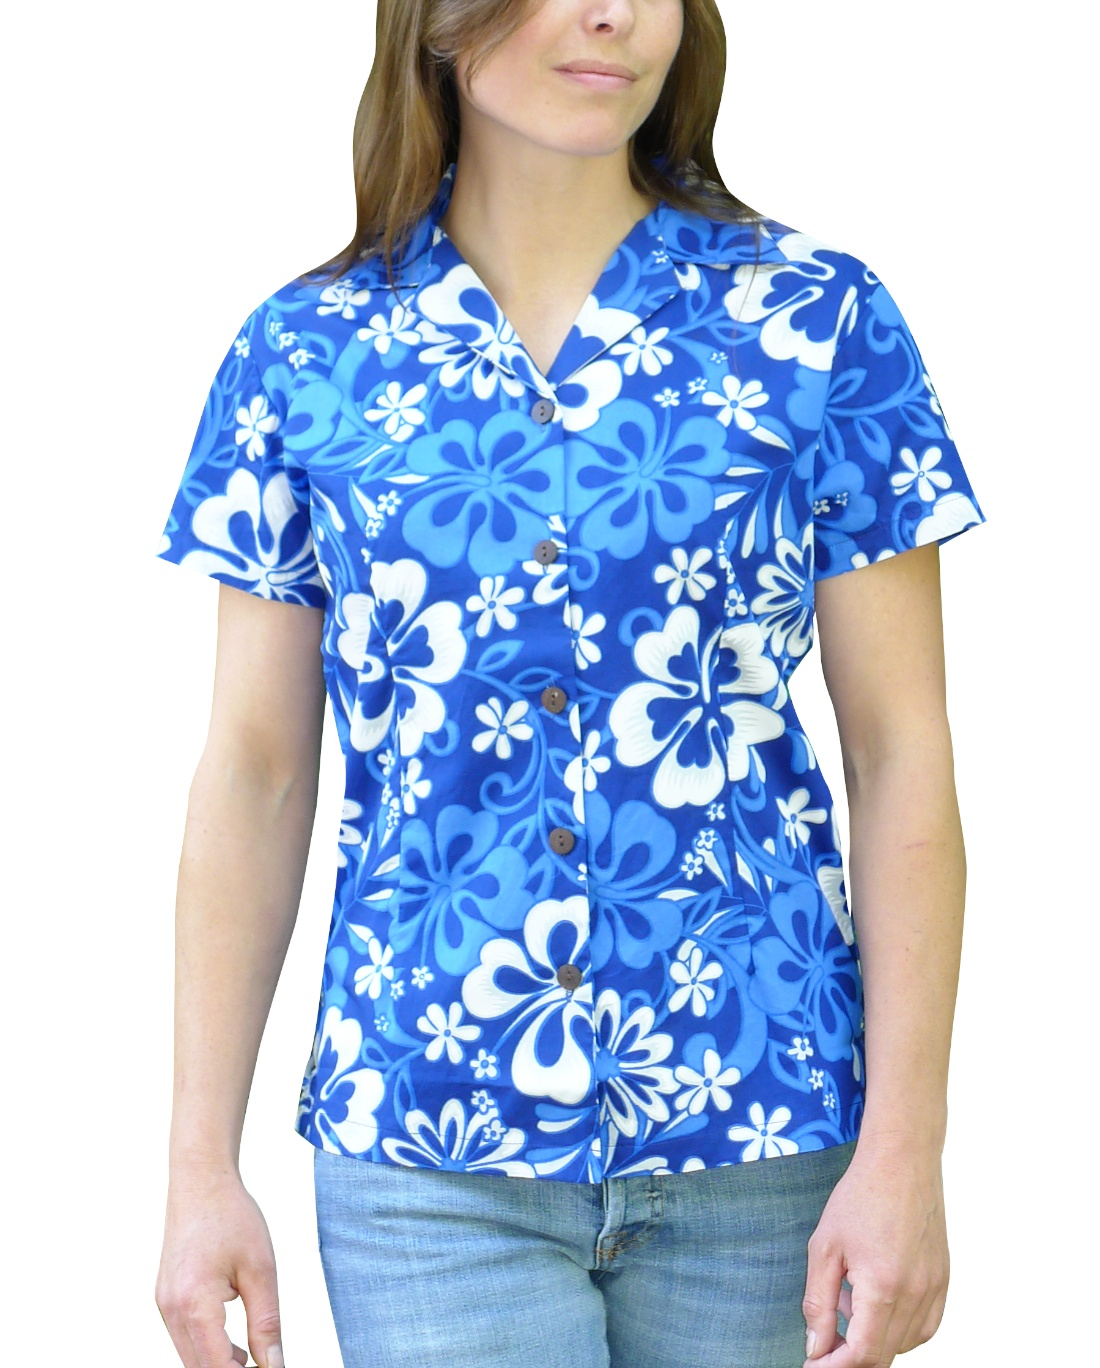 Image of Womens Shirt Blue Fiji Cotton